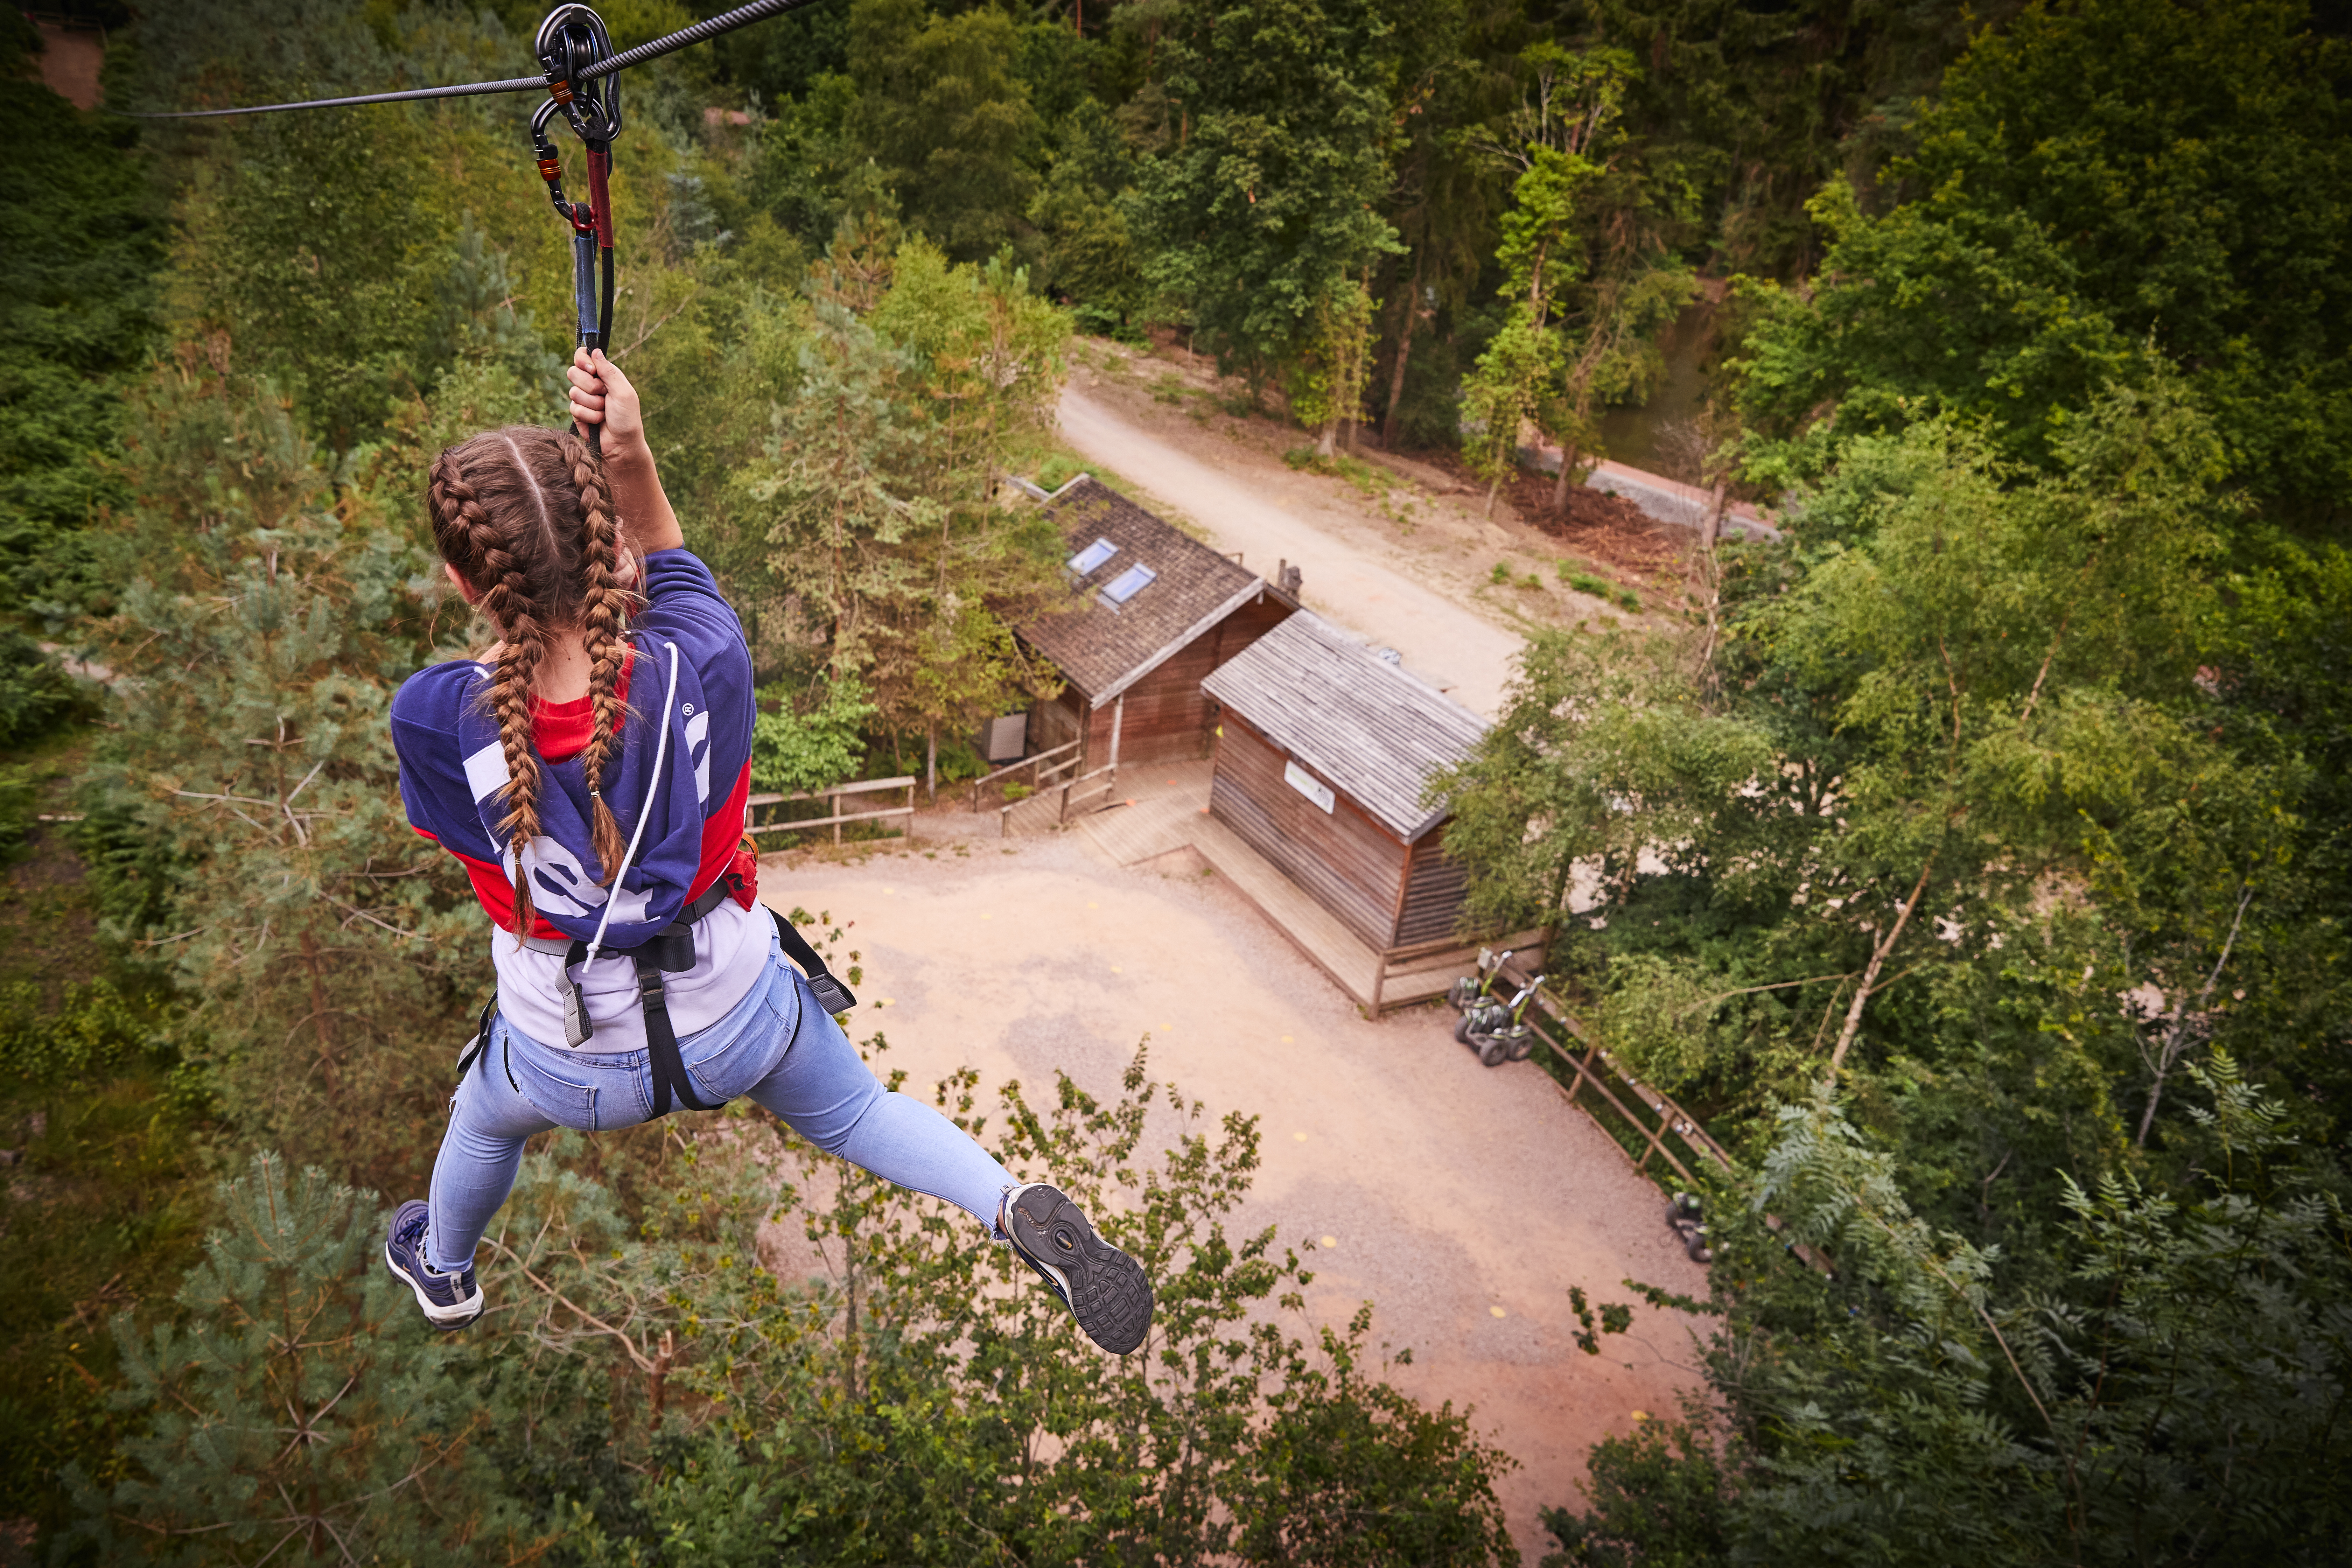 Woman in jeans on a zip wire